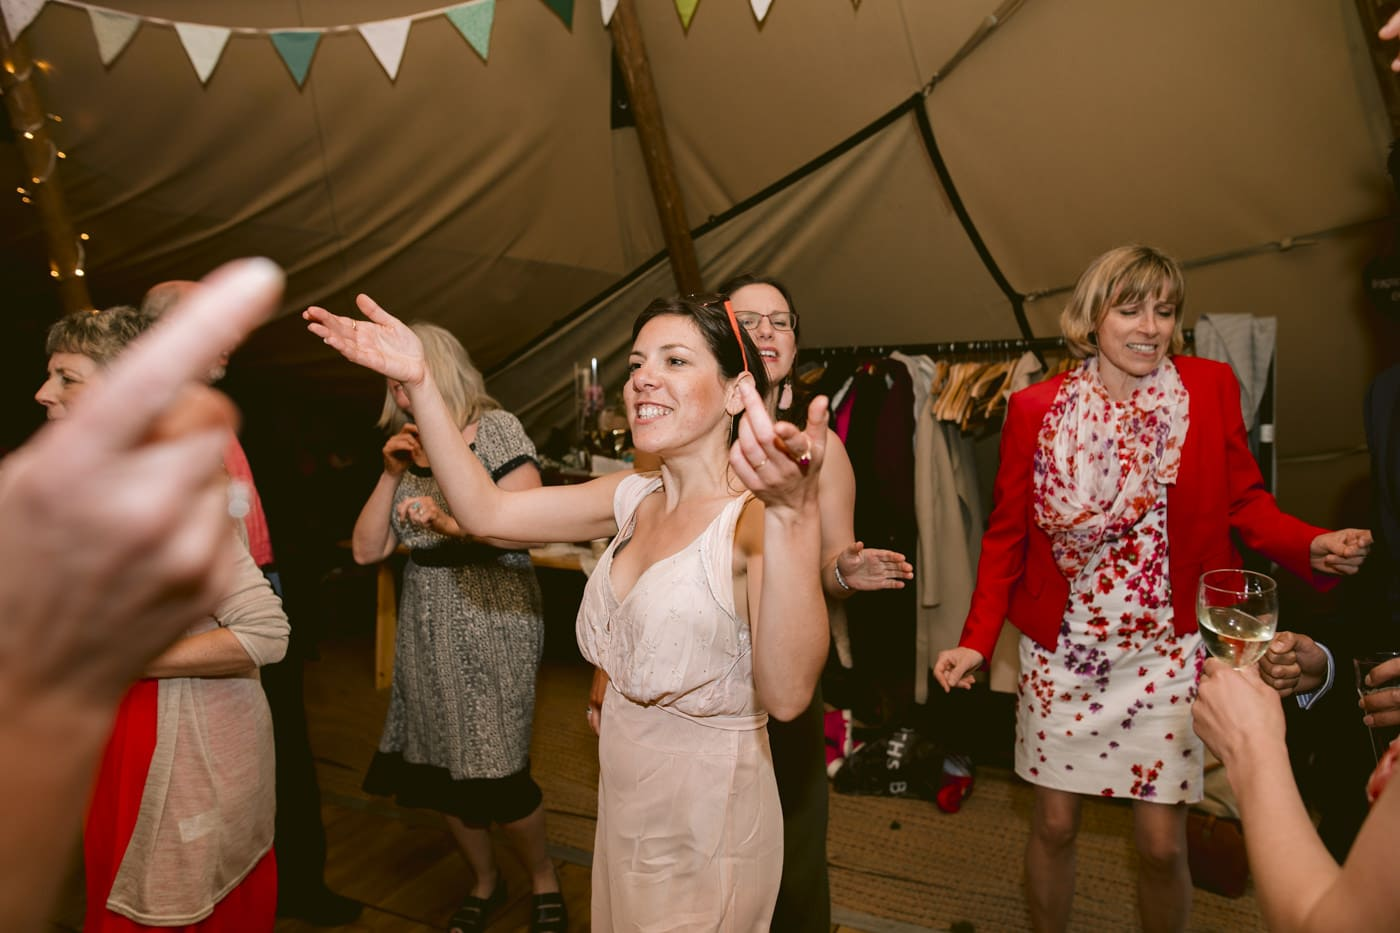 Woman in Pink Dress Dancing with Guests